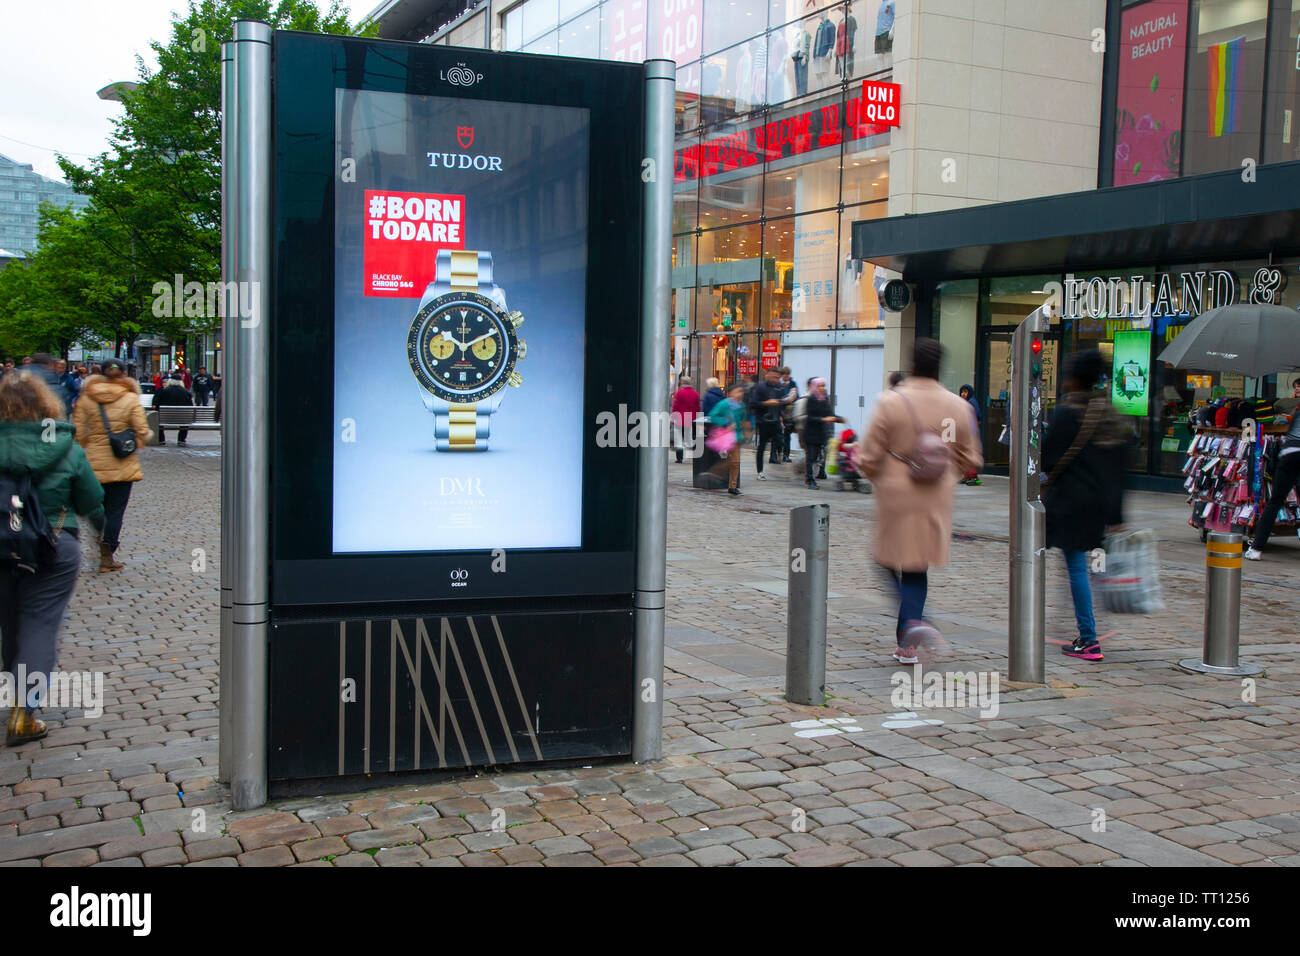 People passing Tudor watch advertising sign; Shops, shoppers, retail business district, Piccadilly, Manchester city centre, UK - Stock Image